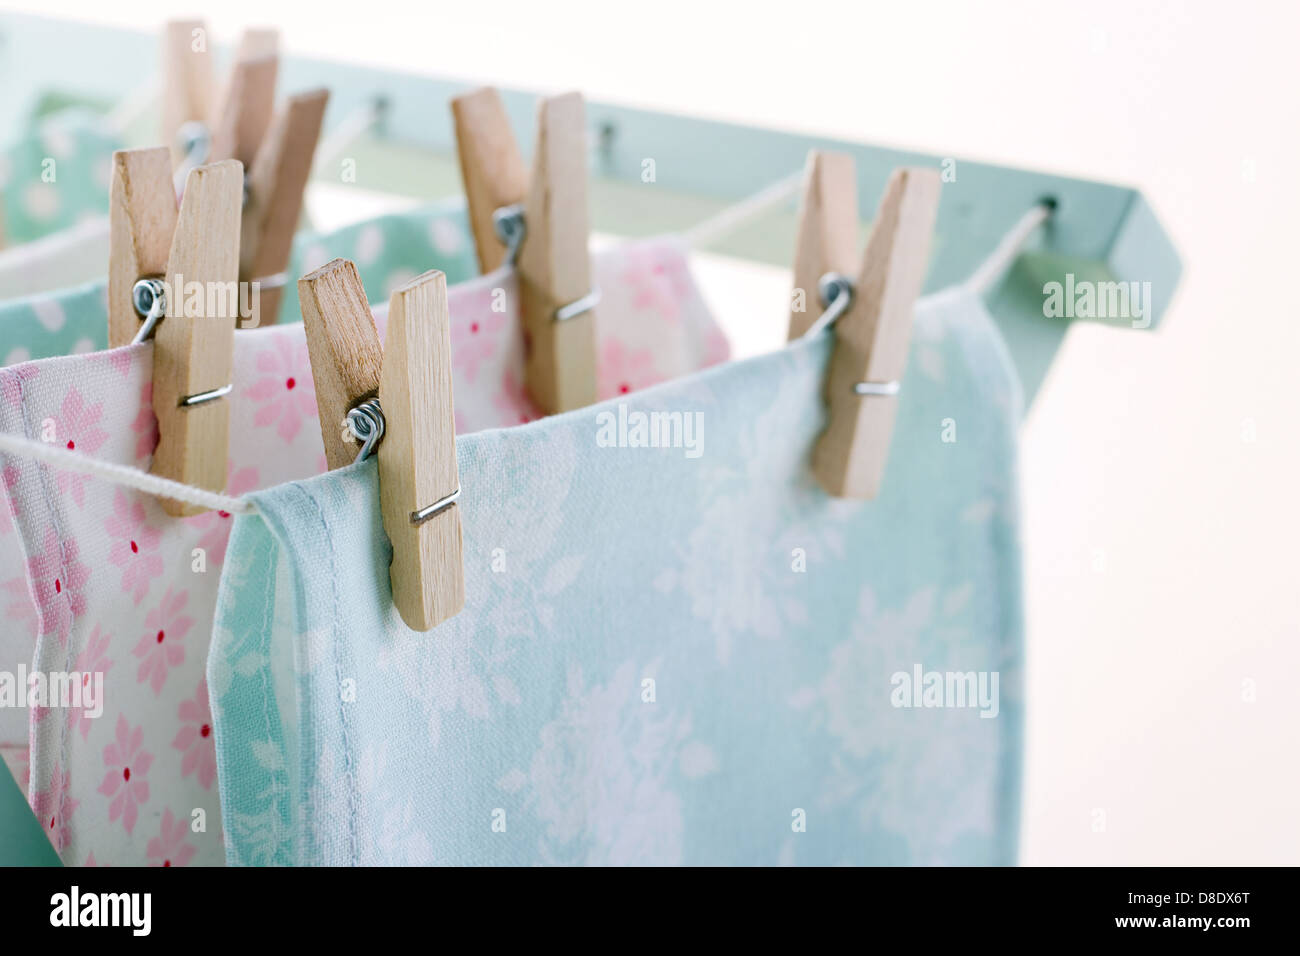 Closeup of pastel color laundry drying on vintage wooden drying rack with copy space - Stock Image